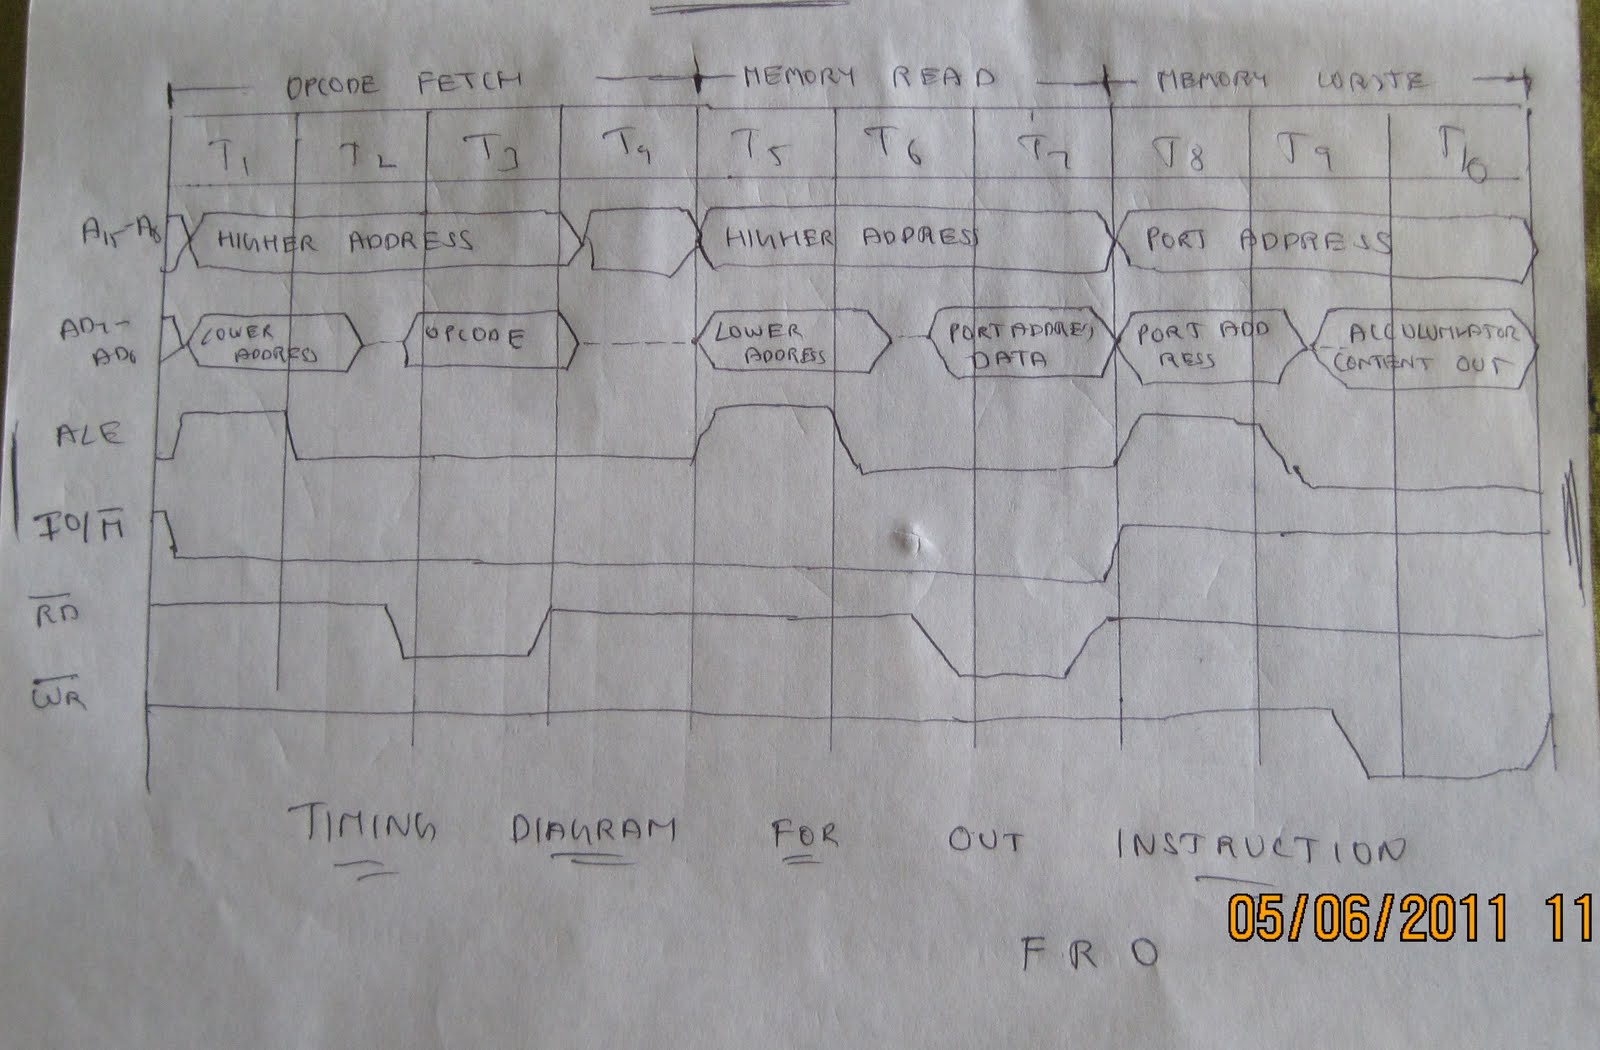 Timing Diagram for OUT instruction(F-R-IOW)